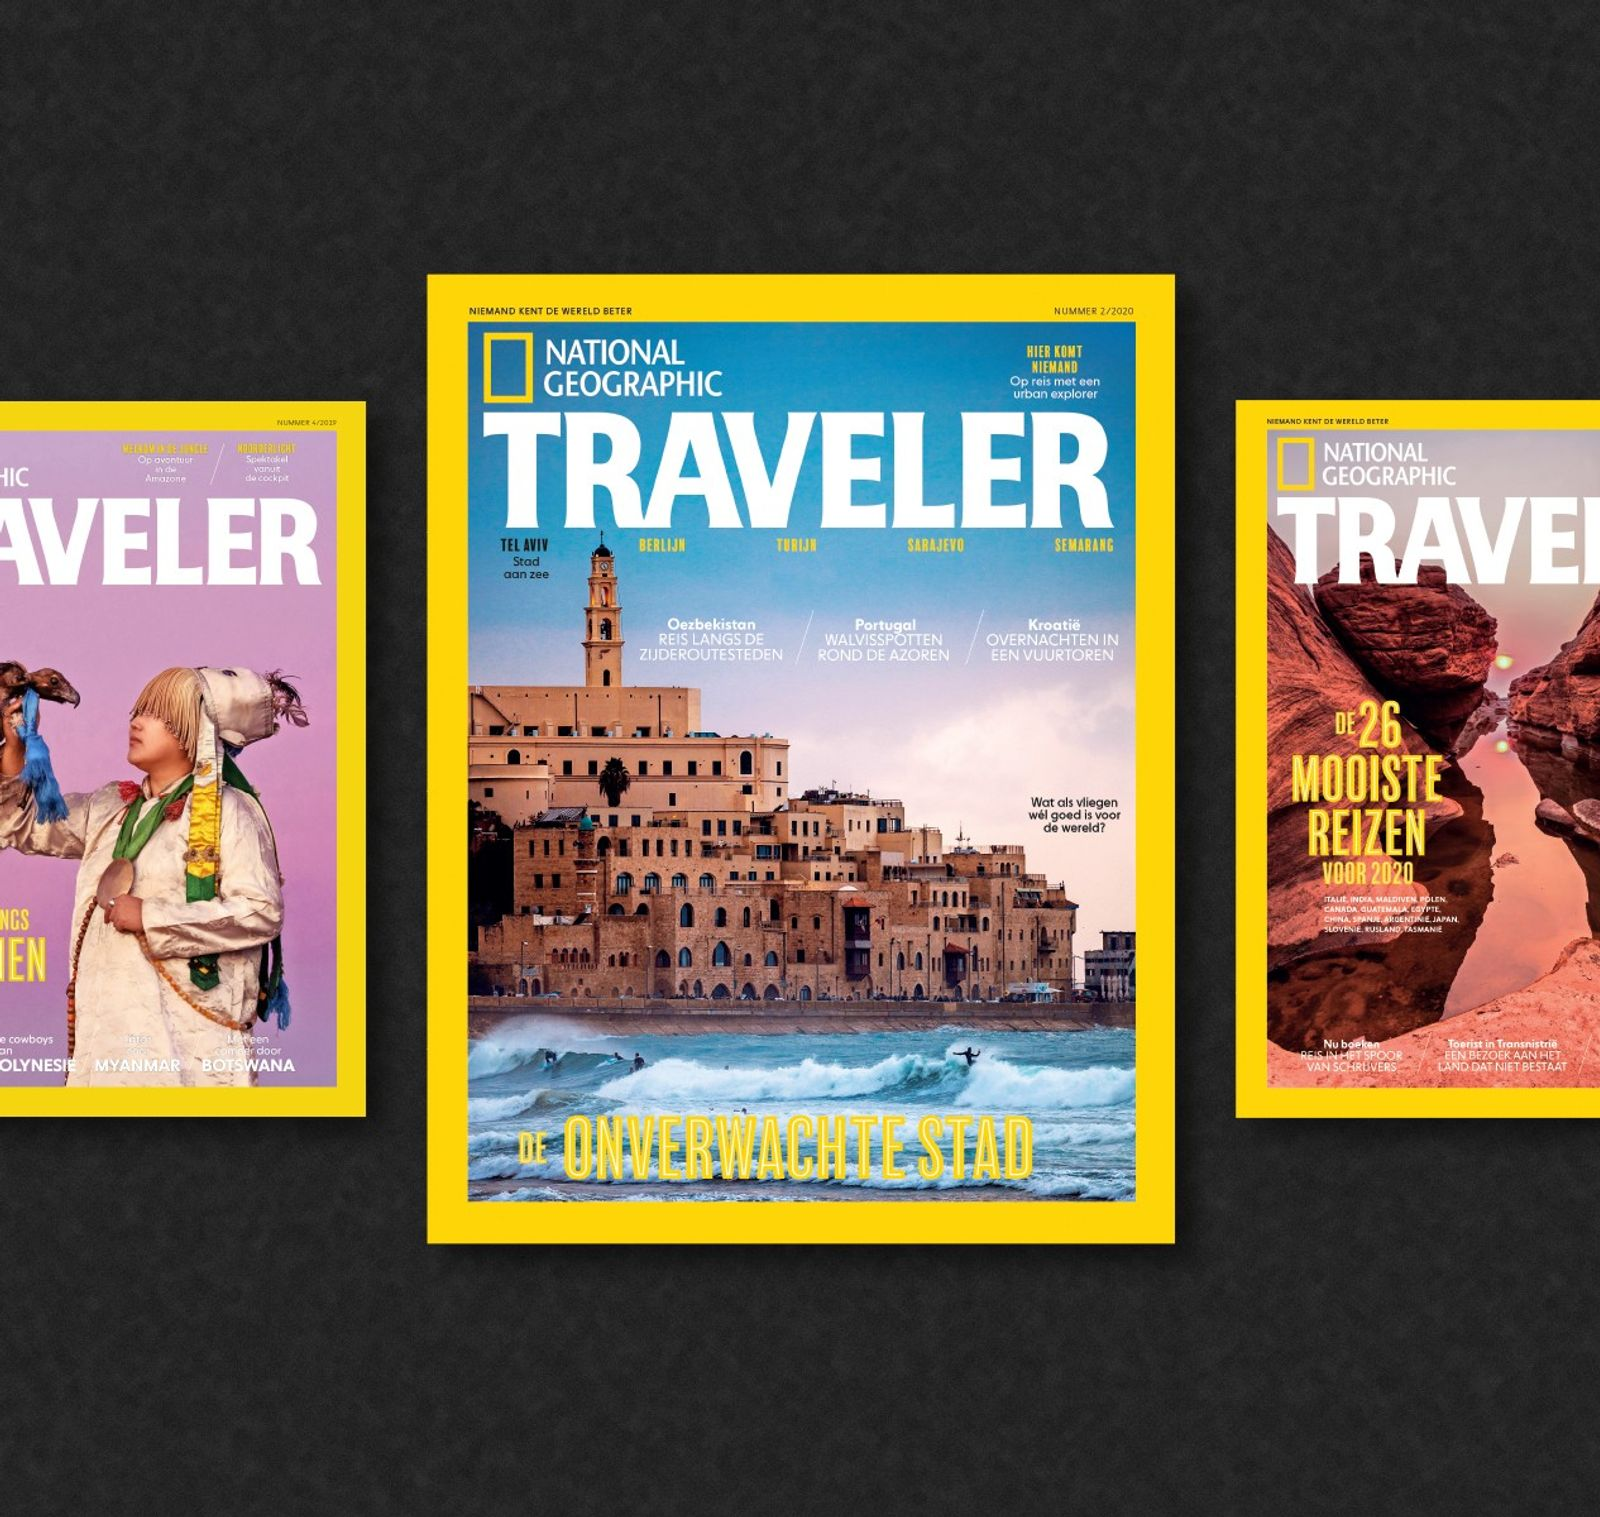 Wil je ook meer National Geographic?